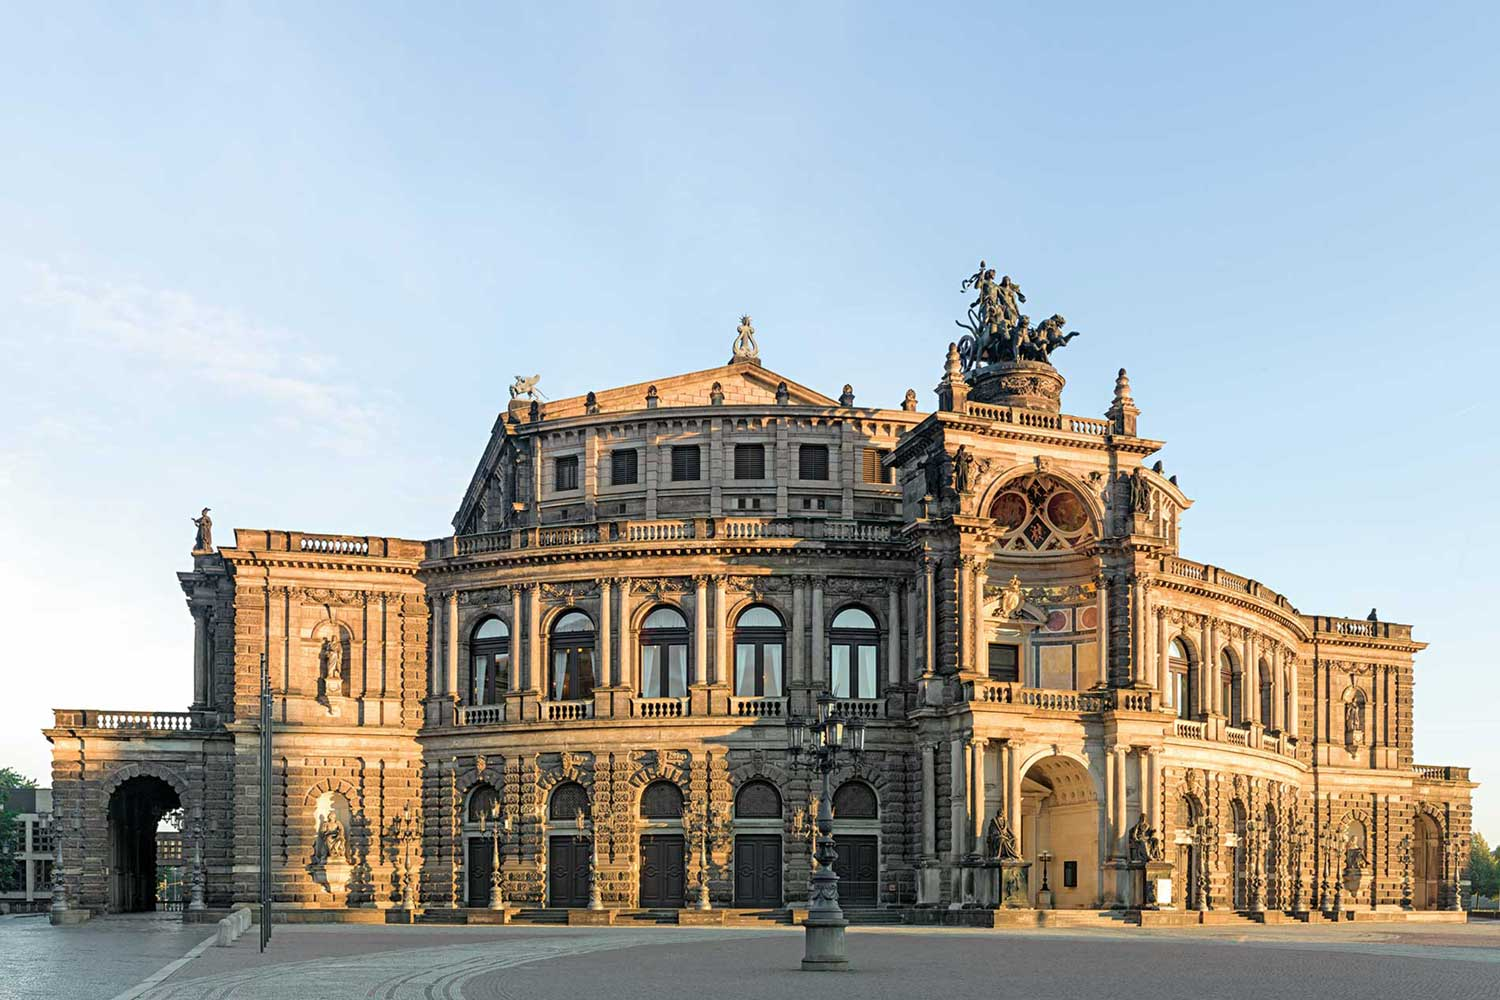 Dresden's Semper Opera House, where the famous five-minute clock sits above the stage that inspired the outsize date display's design on the Lange 1